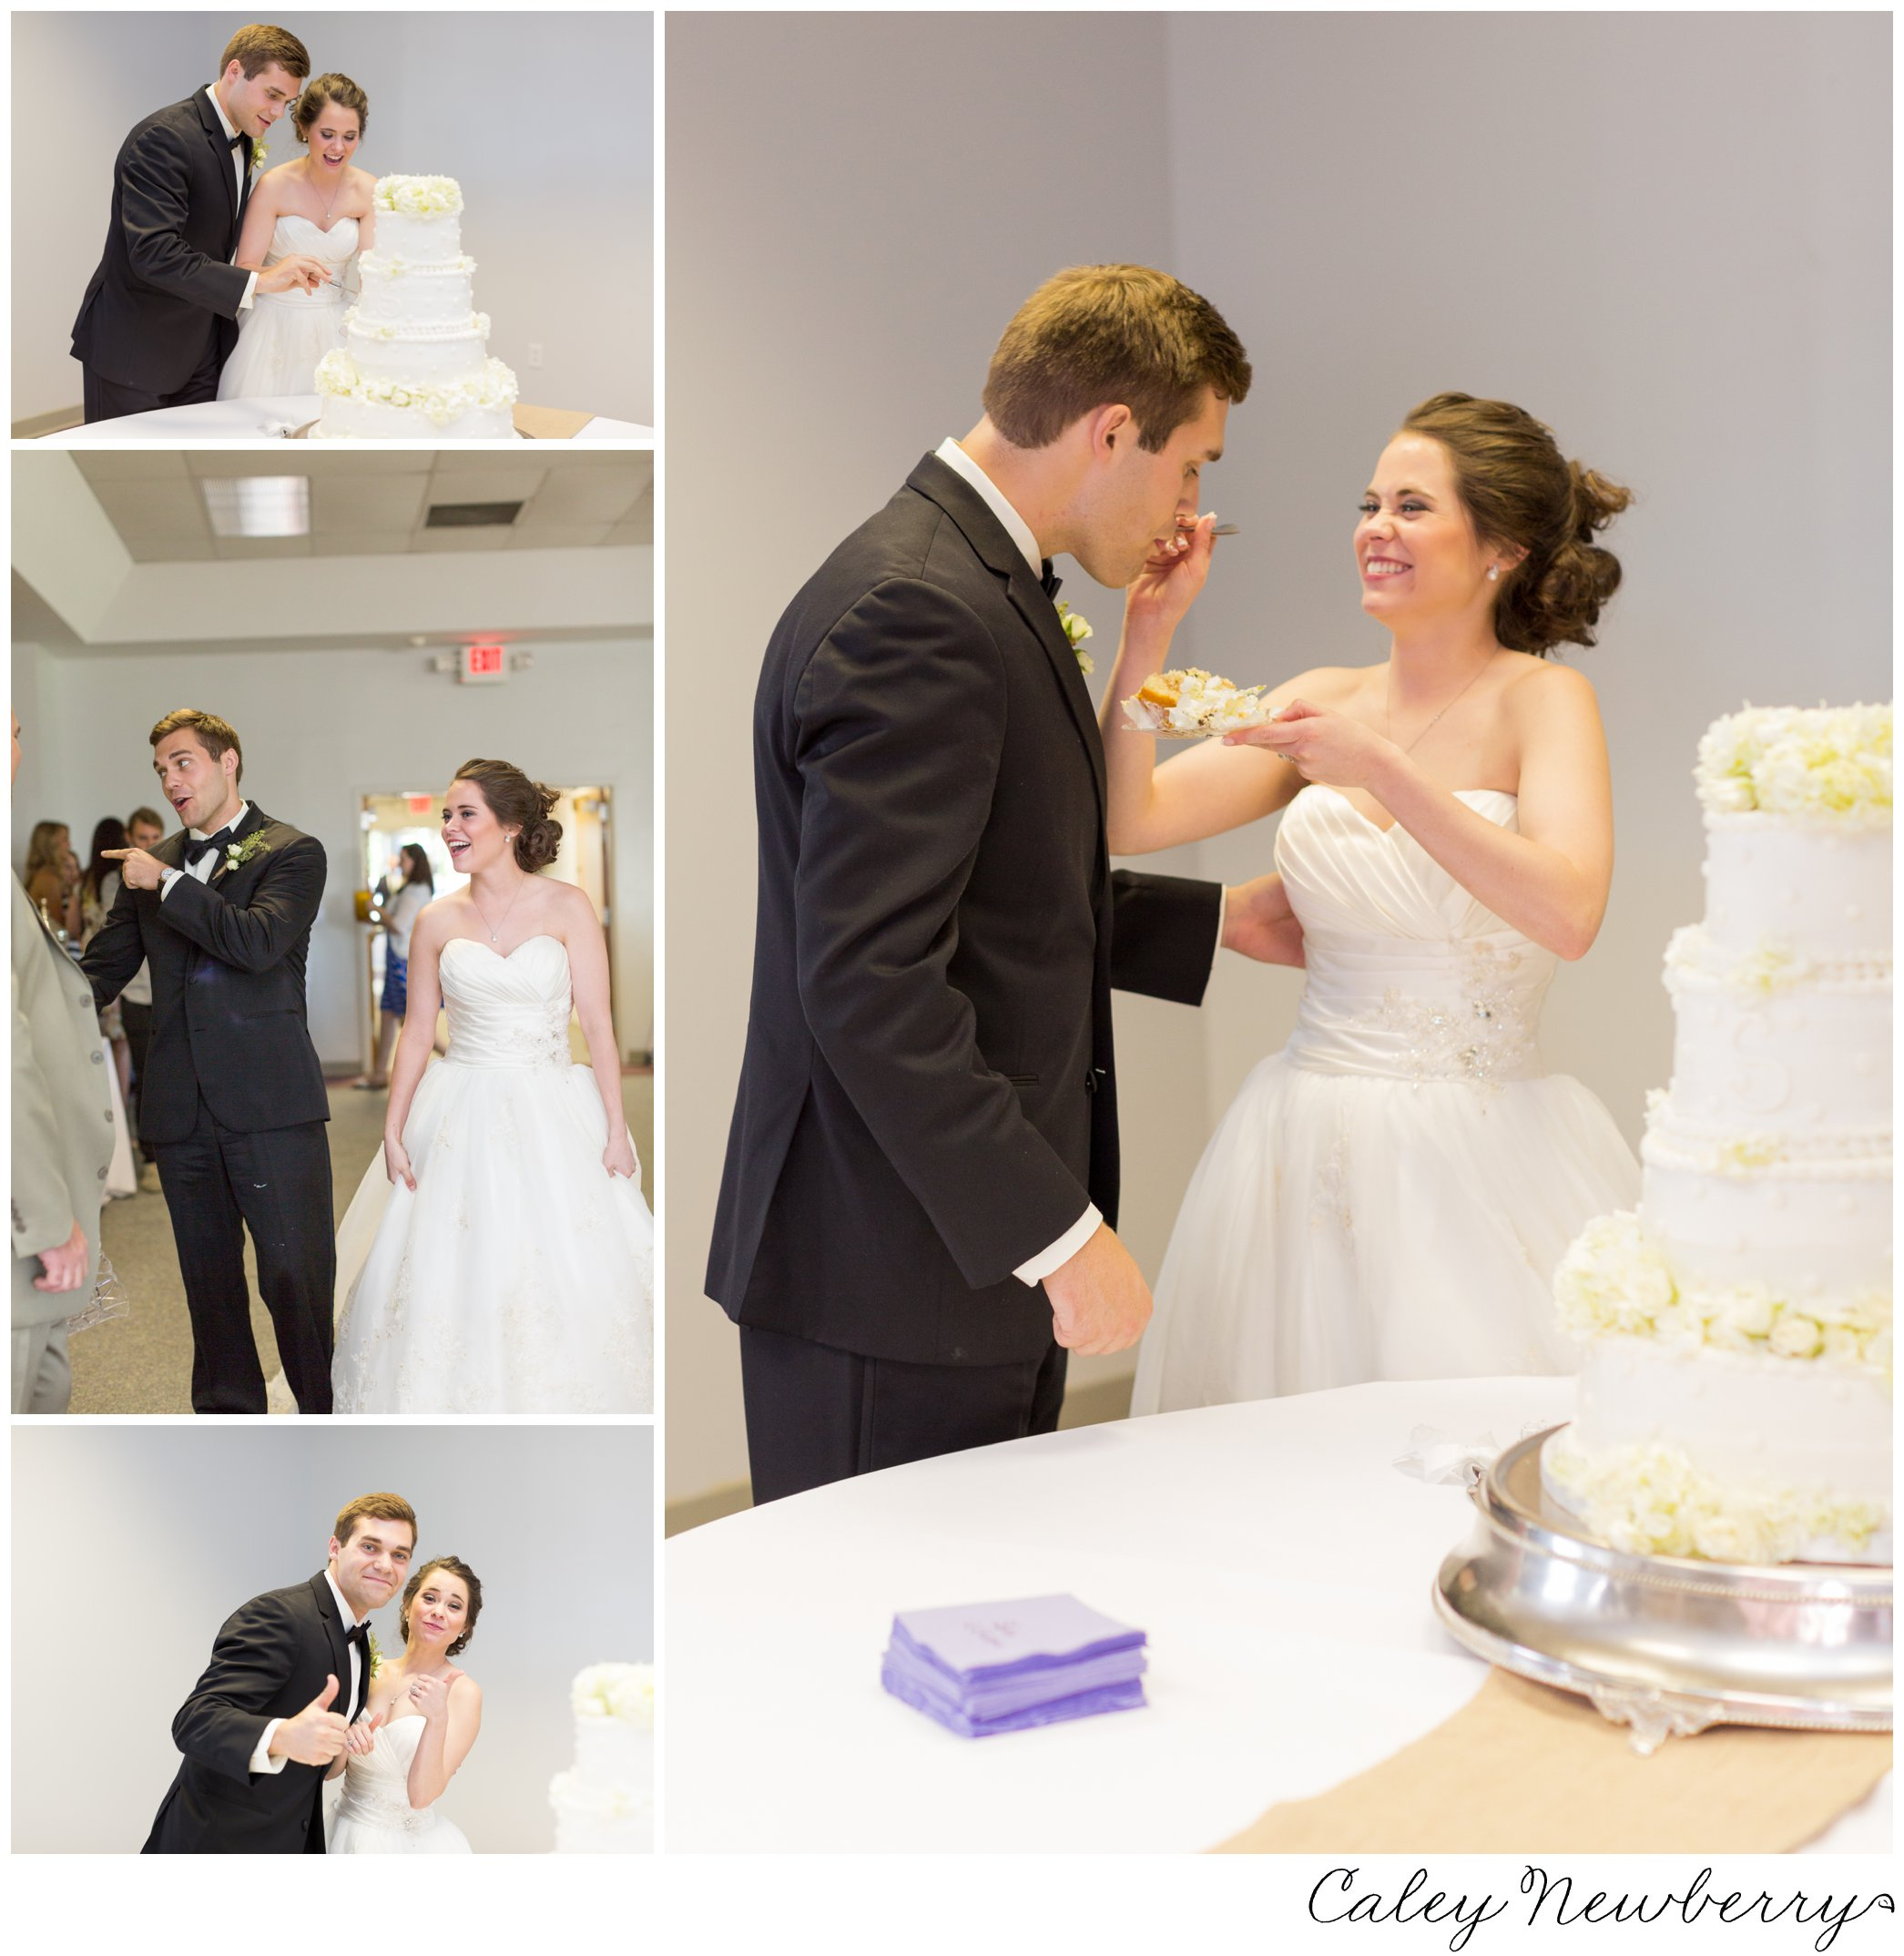 church-wedding-cake-cutting-nashville.jpg